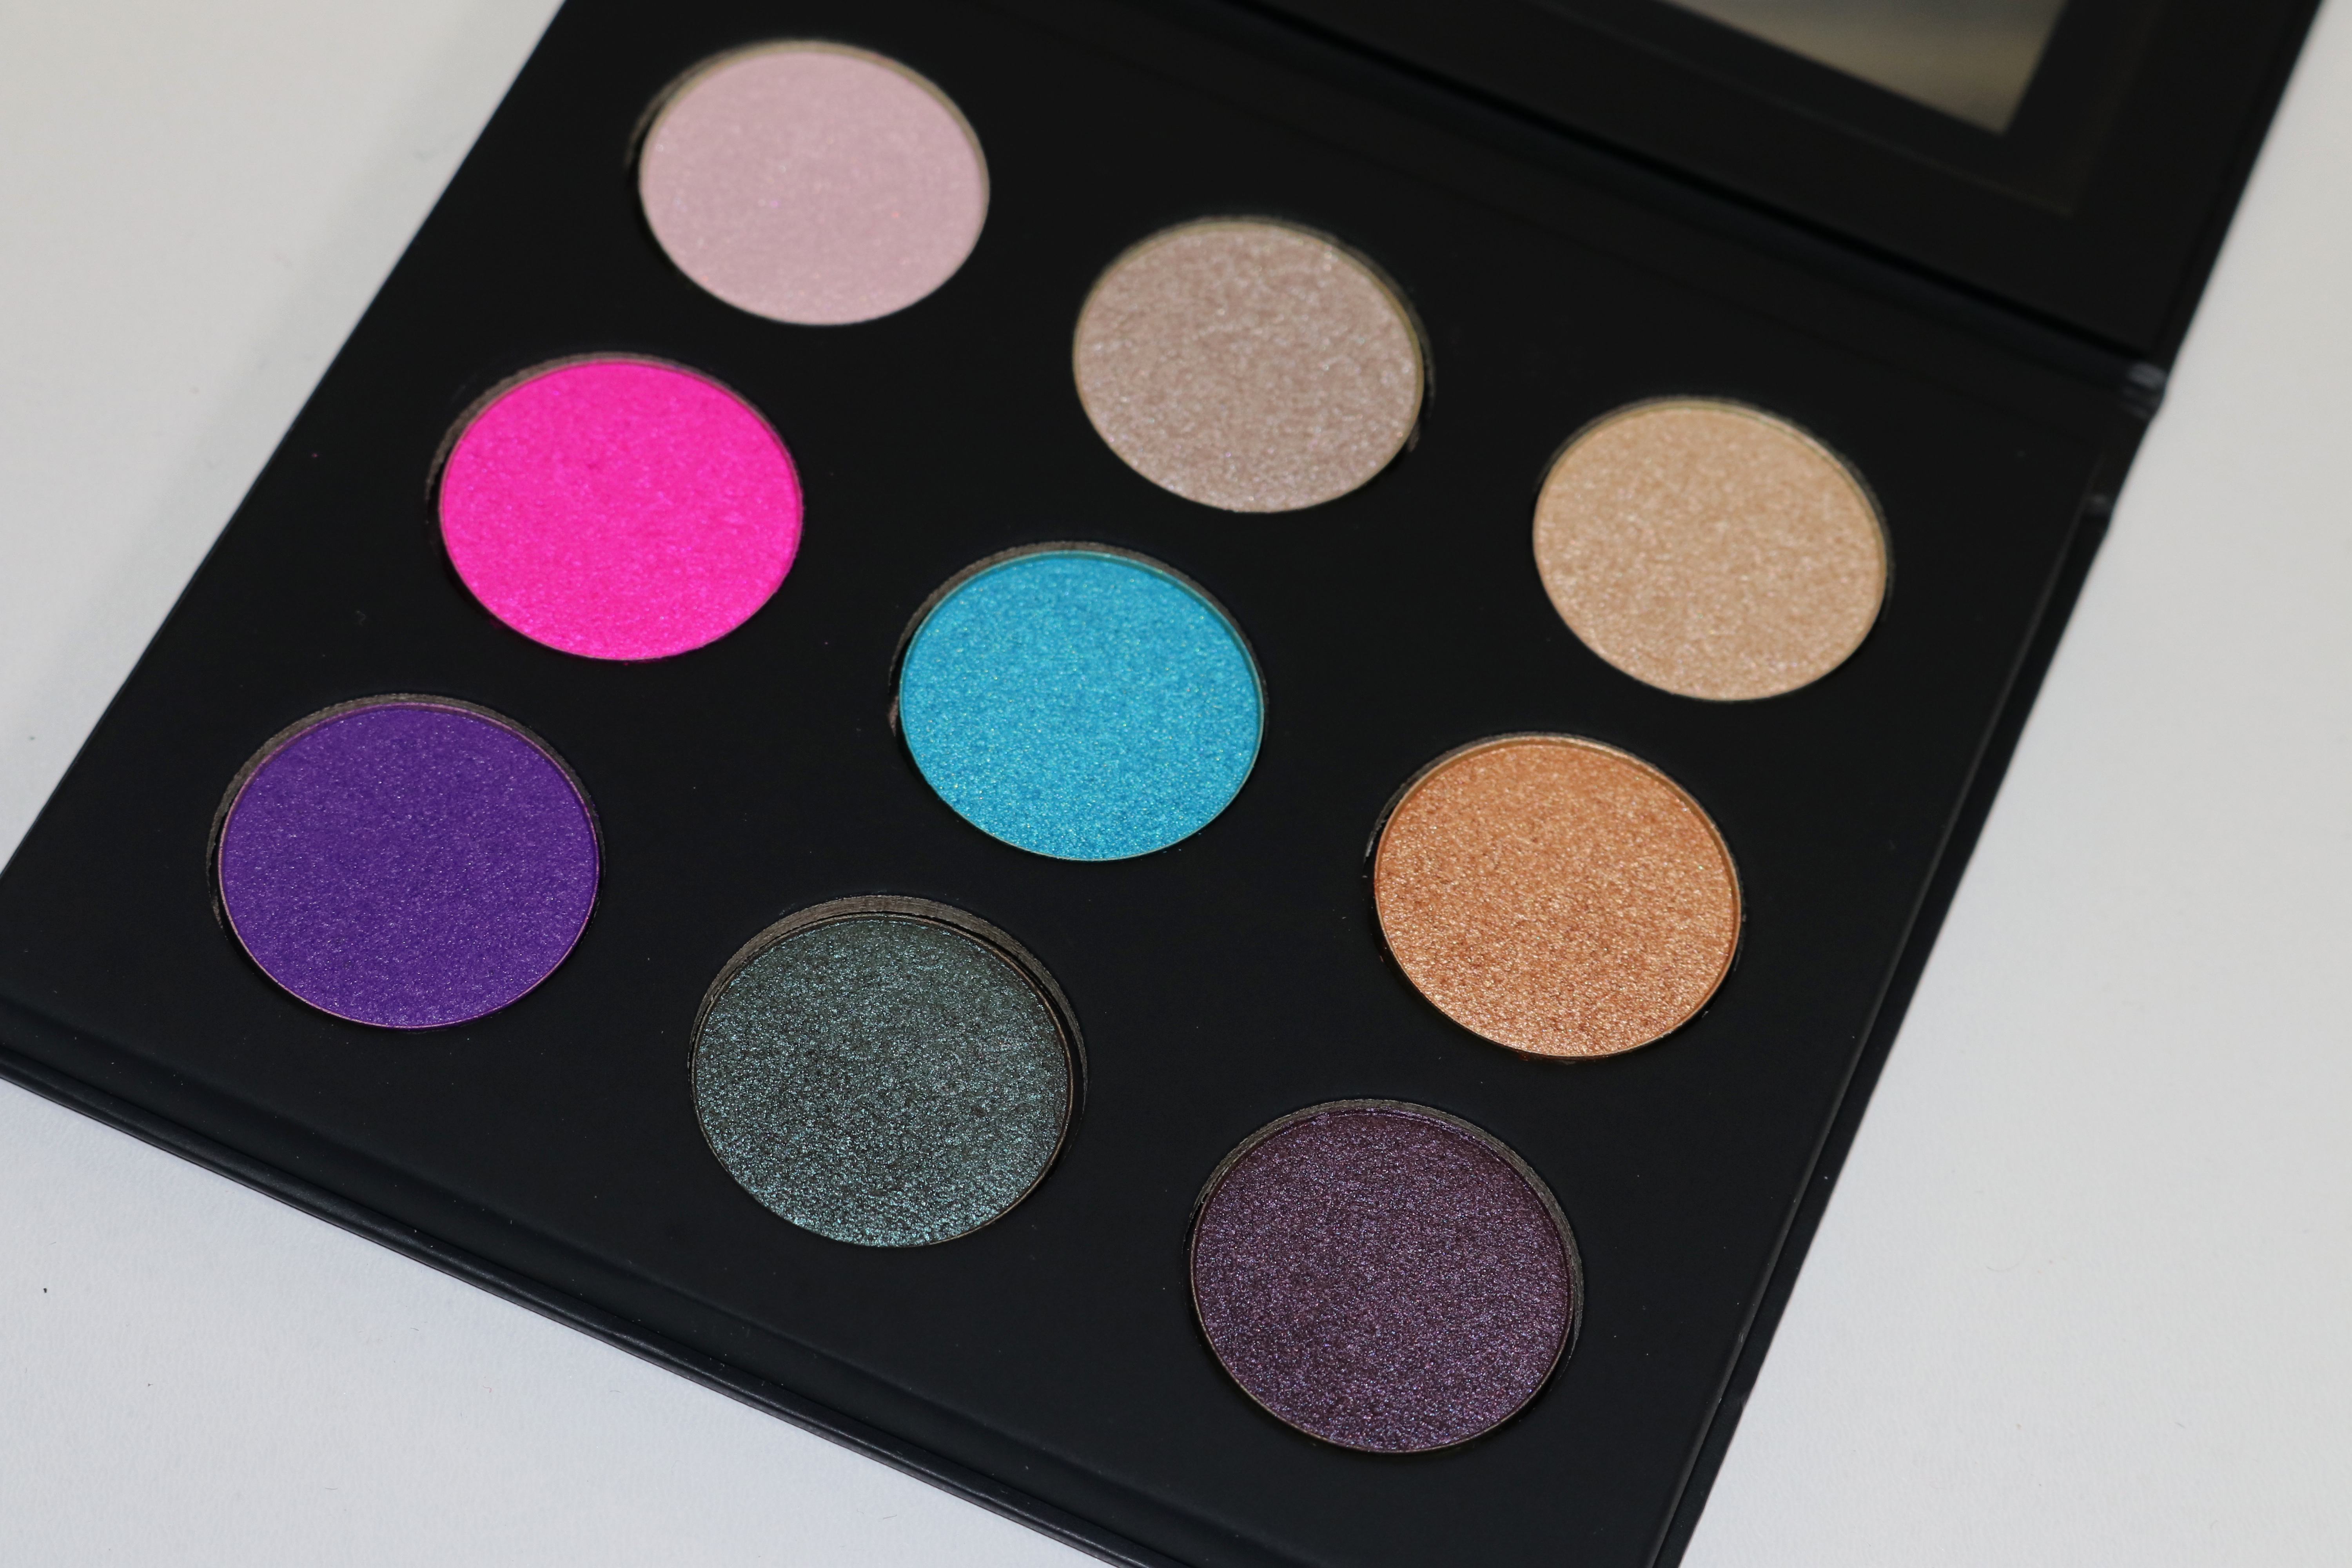 Normally, this palette retails for $42.00 for 0.54 oz. of product but it is currently on a promotion at Sephora for $25. Clearly, with my recent obsession ...